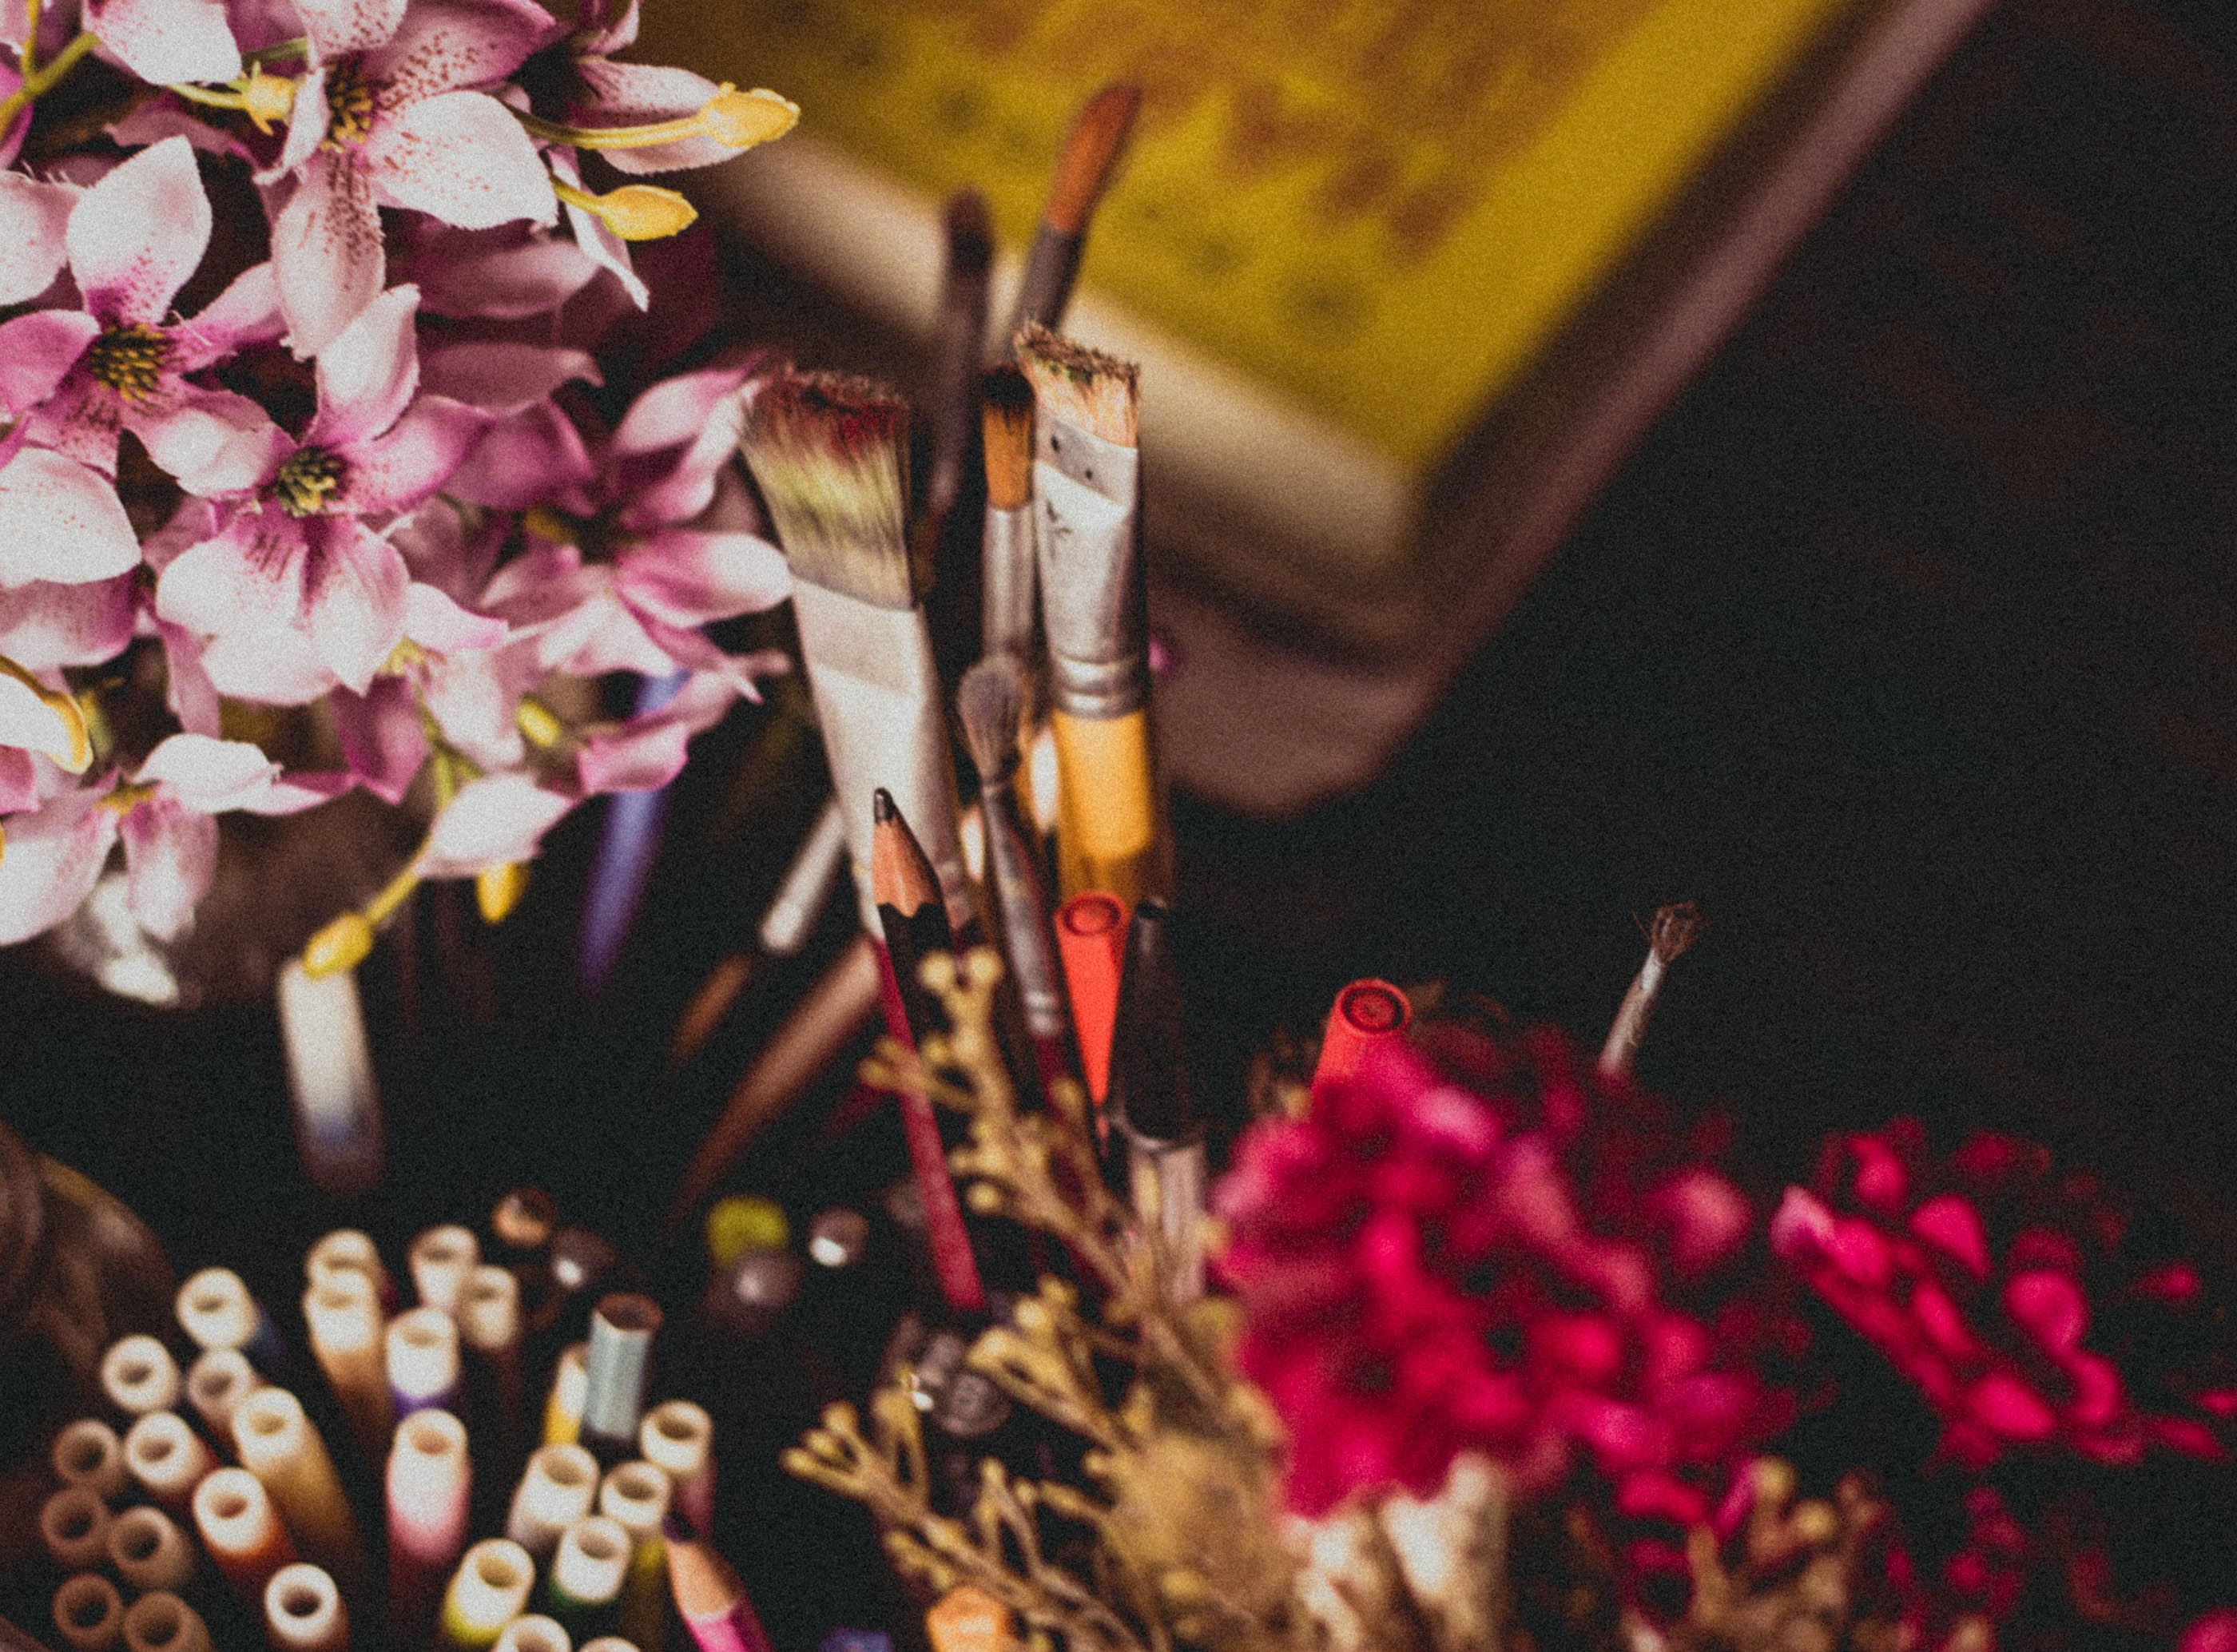 Artist's paintbrushes and pencils in cups on a table with flowers